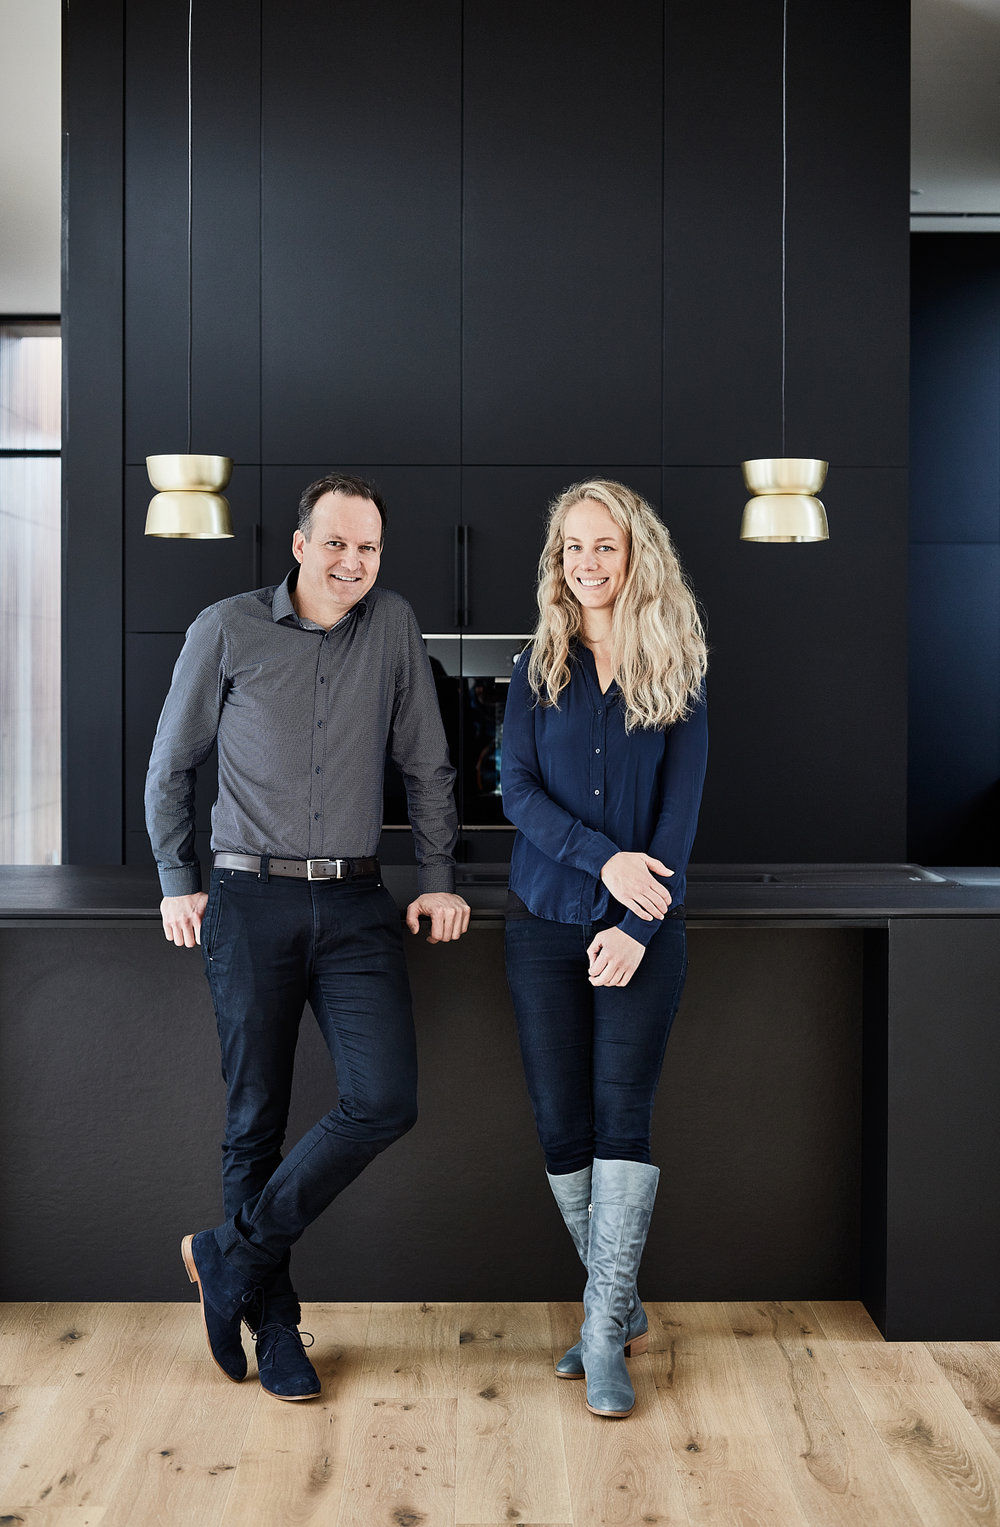 Benjamin Stibbard and Kate Fitzpatrick of Auhaus Architecture. Picture: Mike Baker